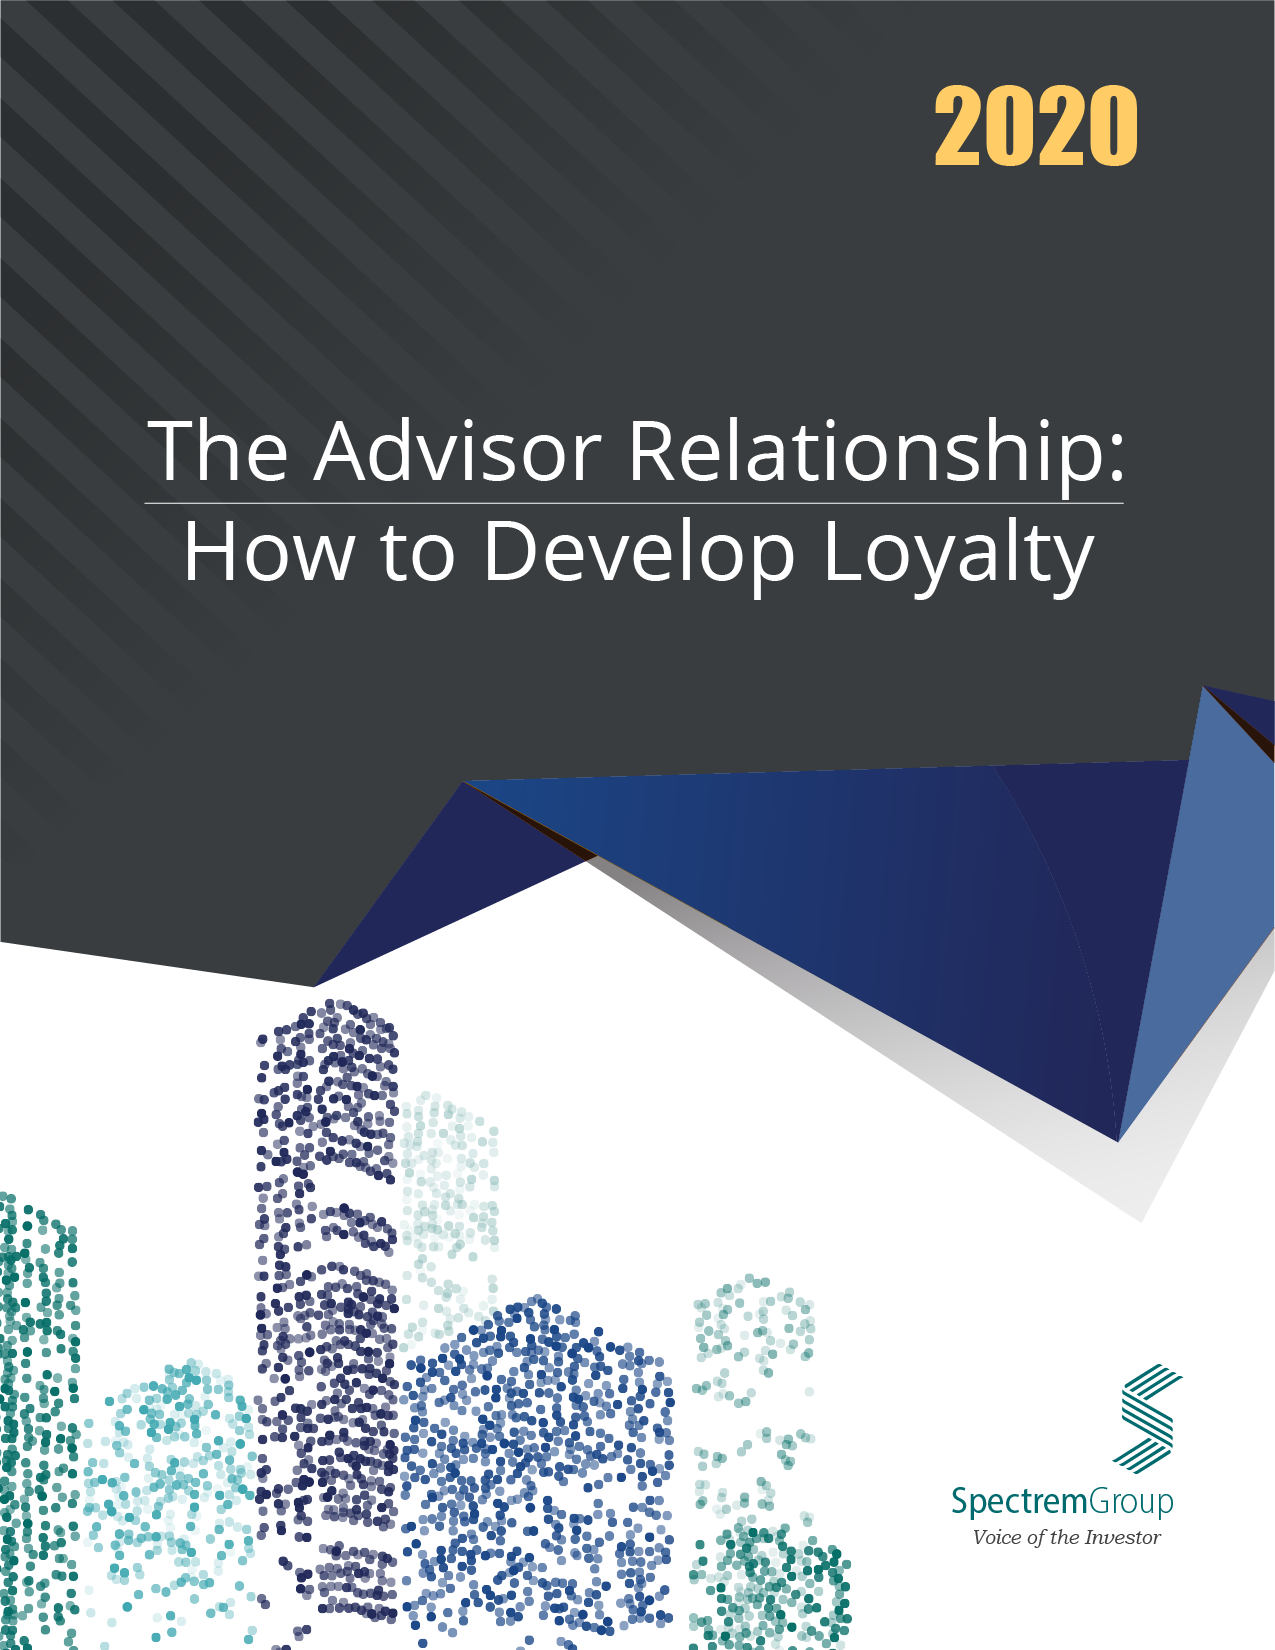 Wealthy Investor Series: The Advisor Relationship - How to Develop Loyalty